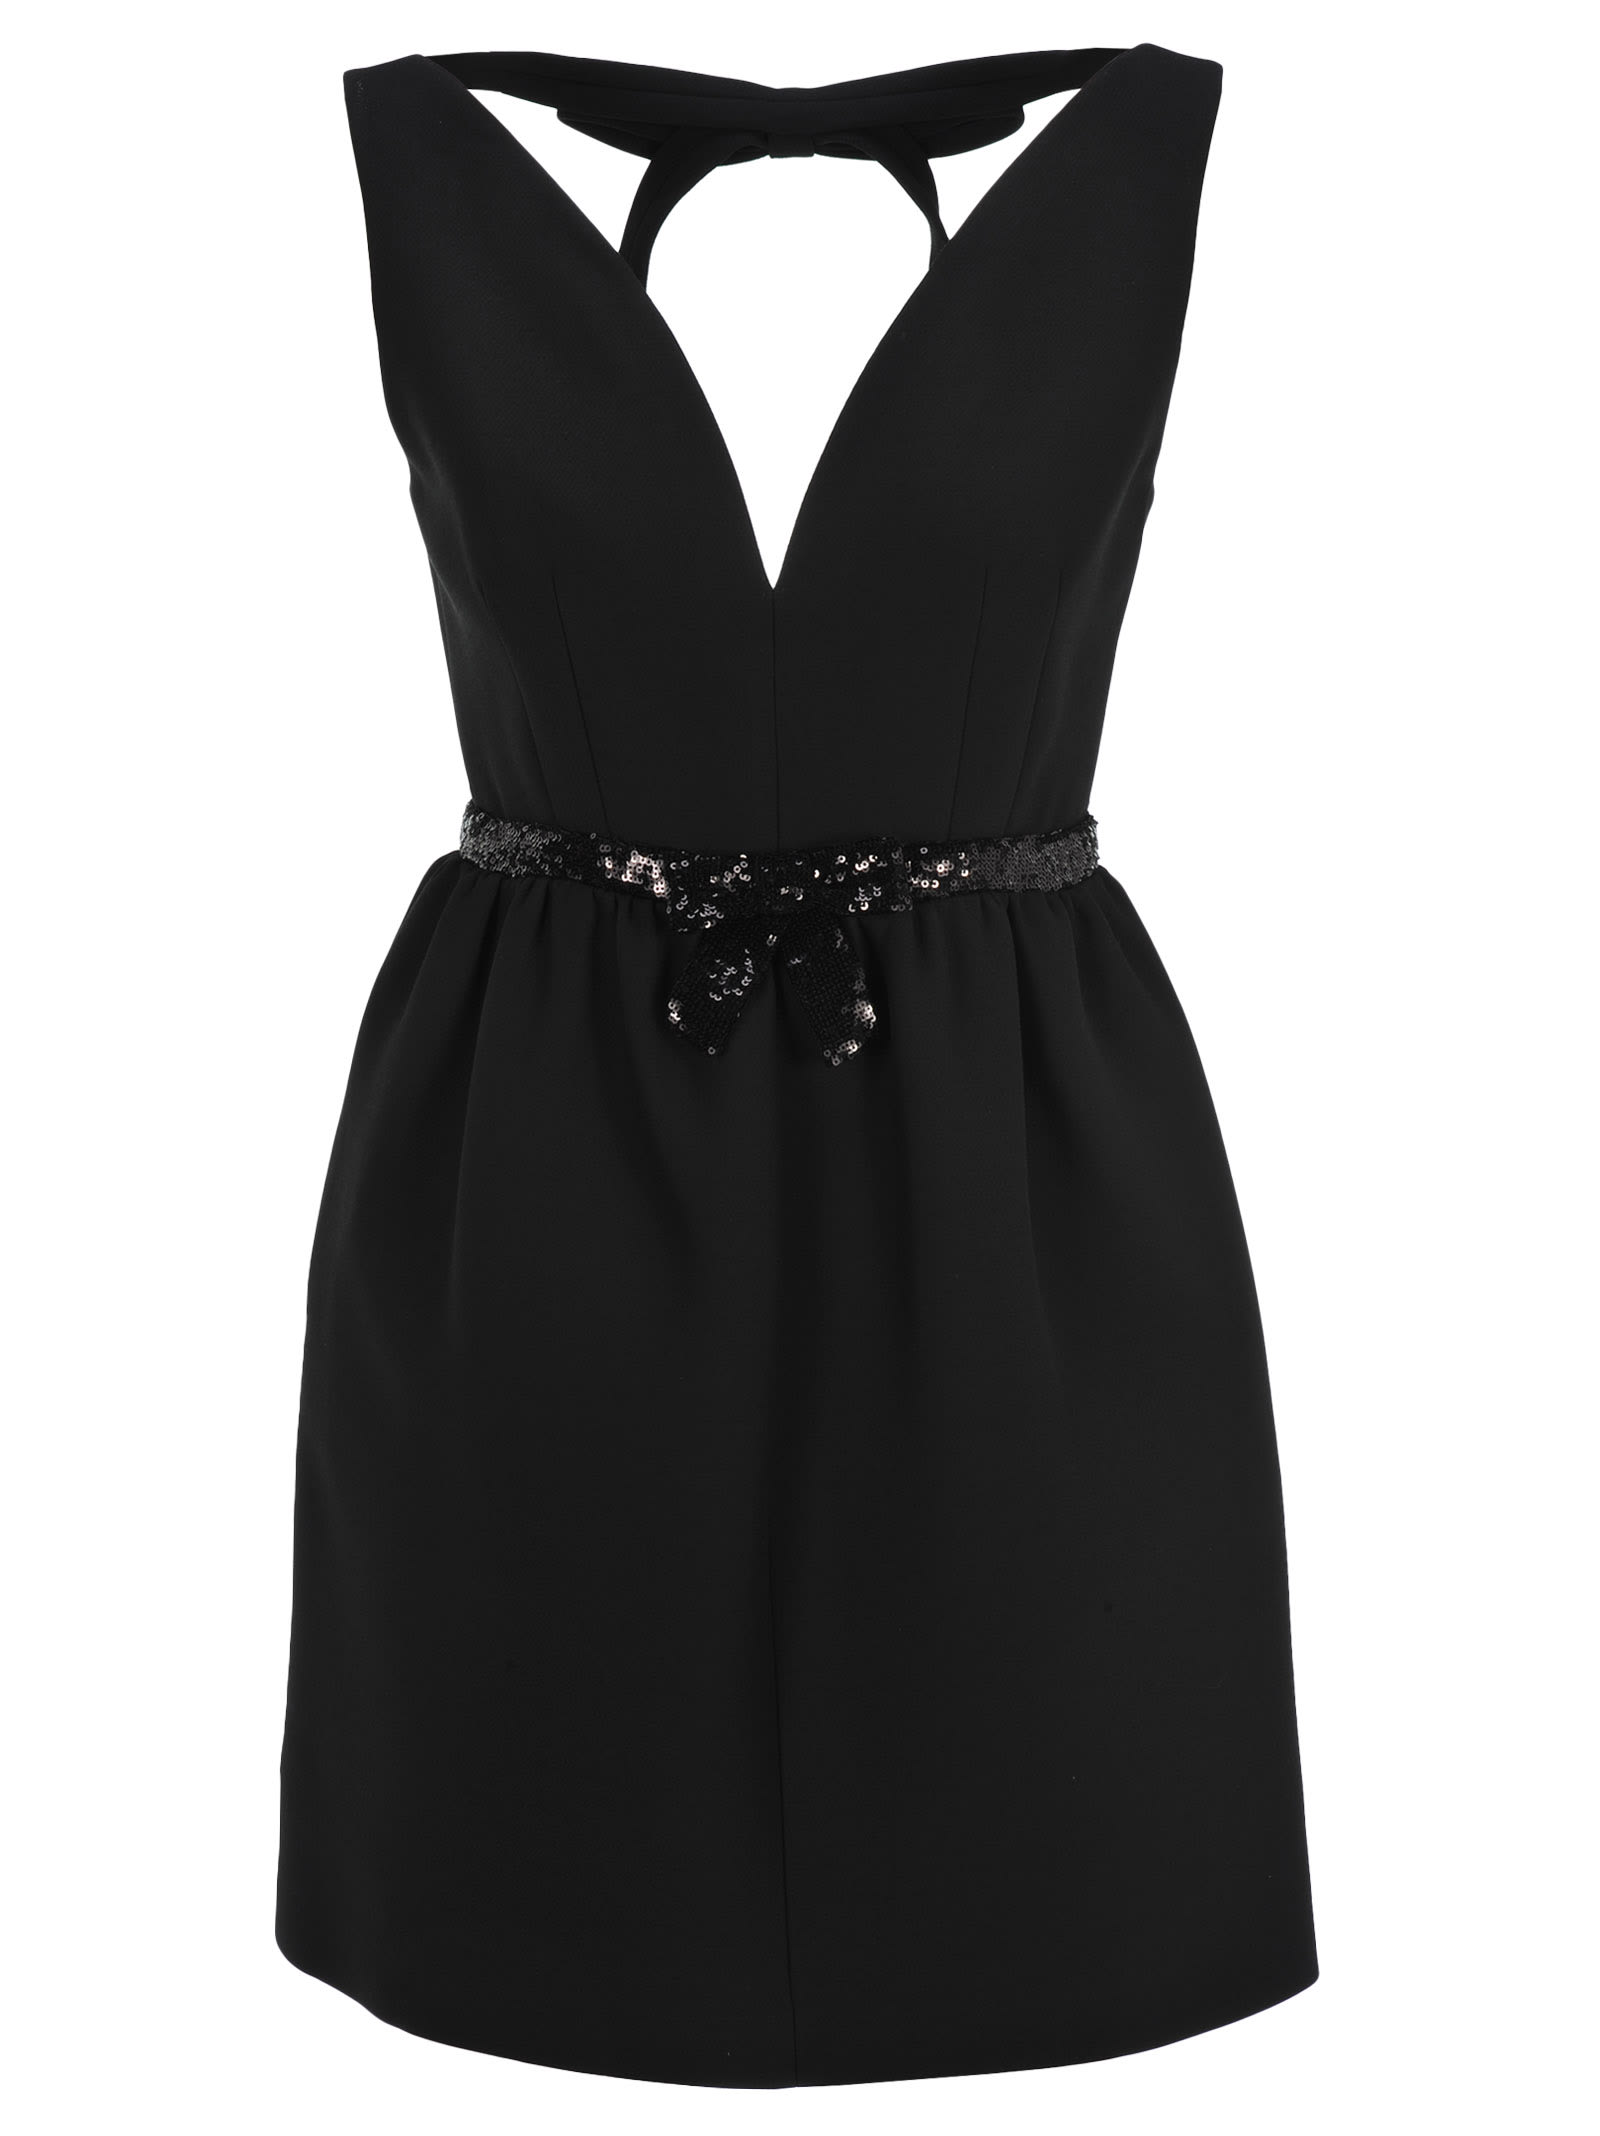 Miu Miu Sequin-embellished Belted Mini Dress